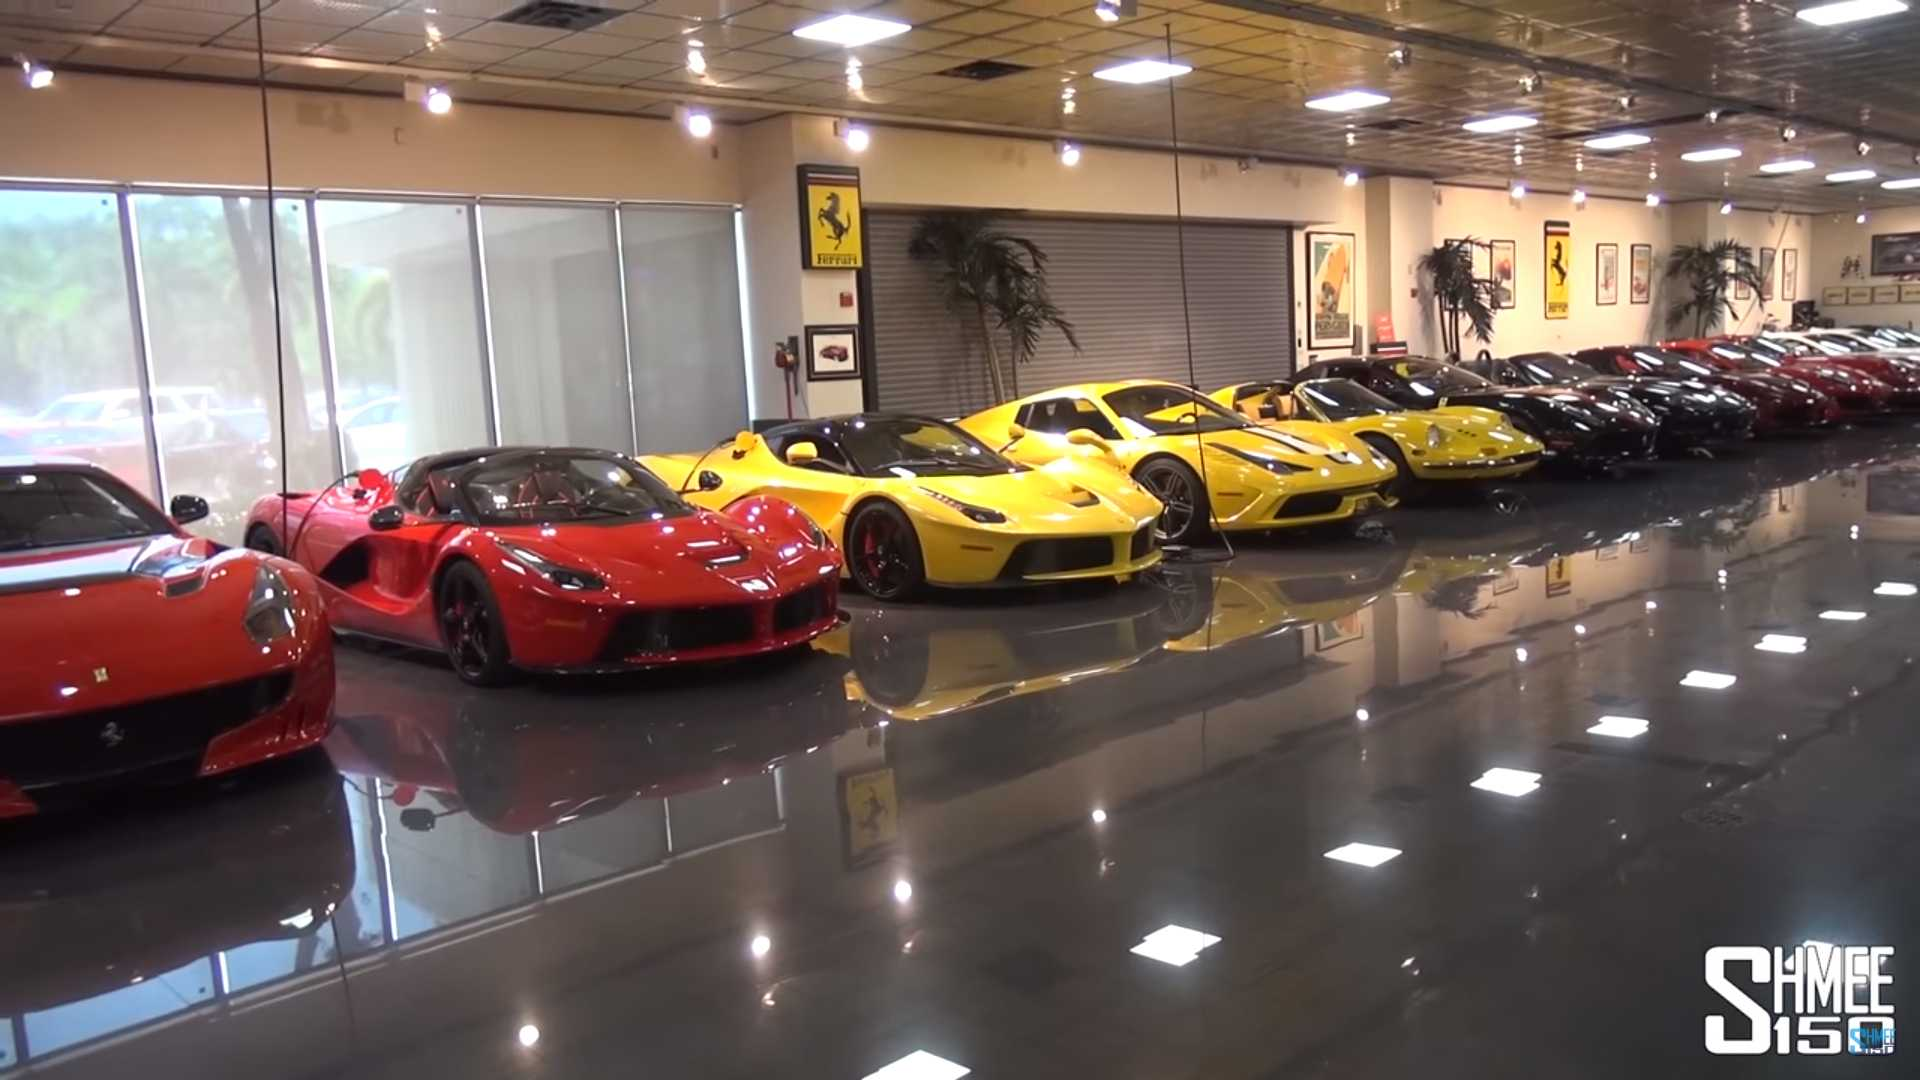 Epic Car Collection Has 3 Lfas 2 Laferraris And 7 Toyota 2000gts